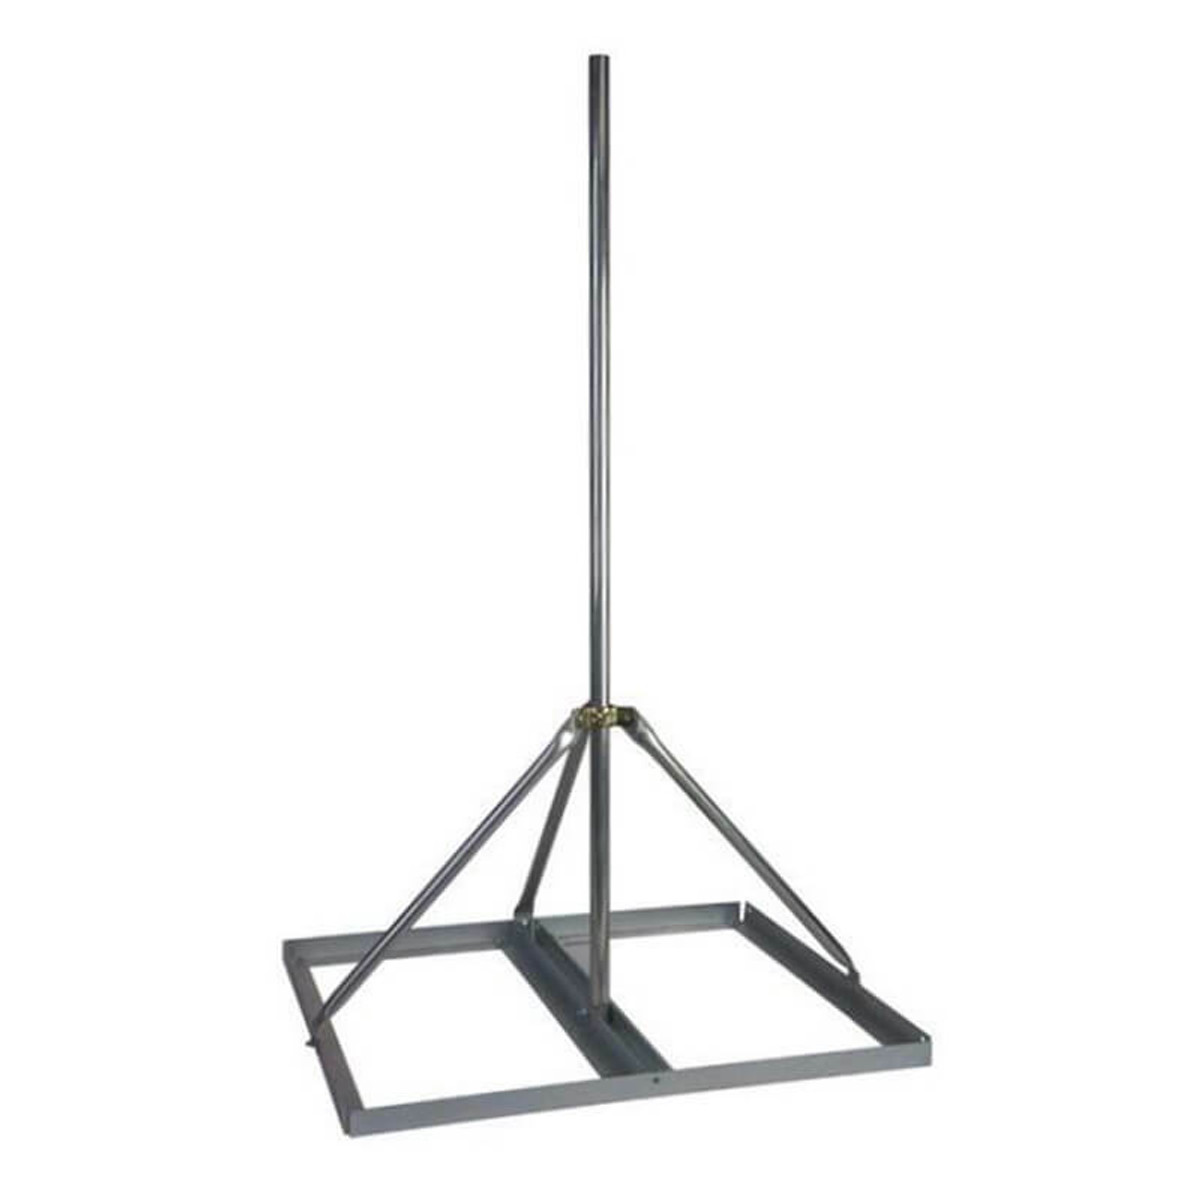 Non-penetrating Roof Antenna Sled Mount